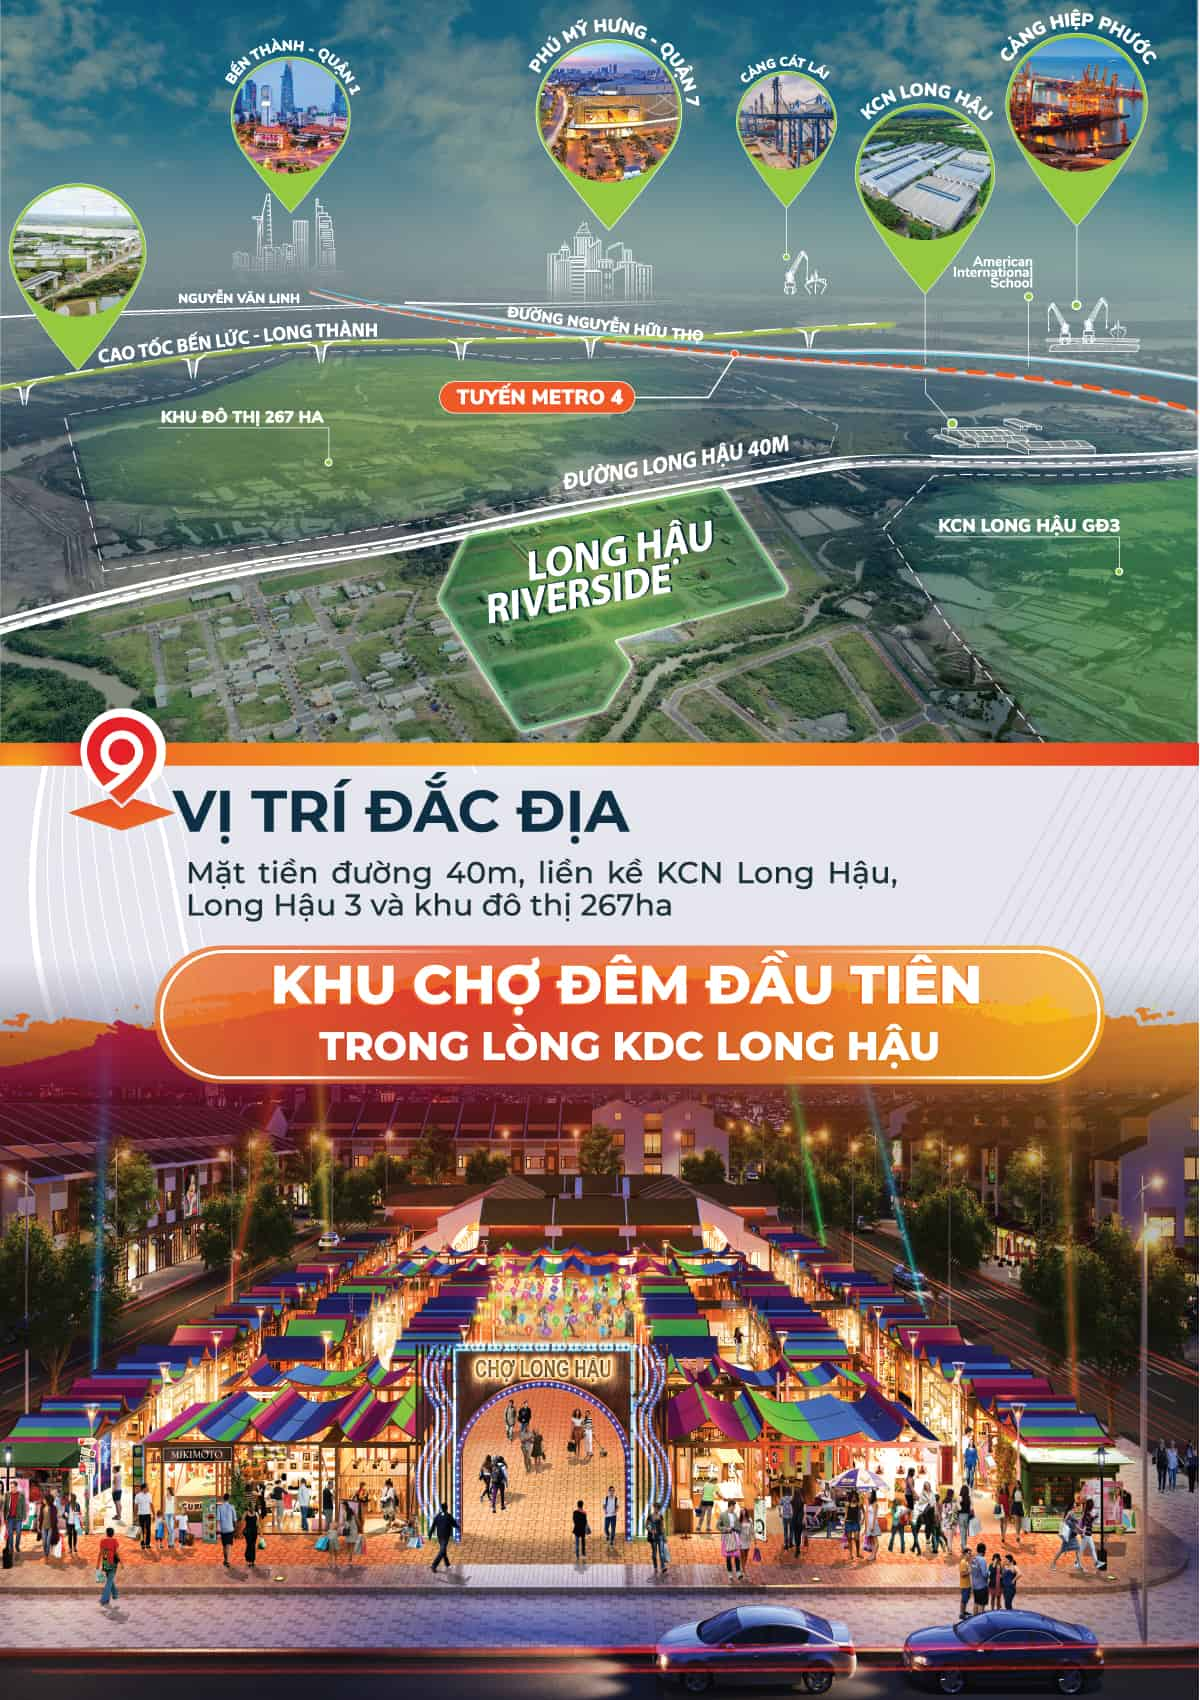 du an long hau riverside 5 - Dự án Long Hậu Riverside